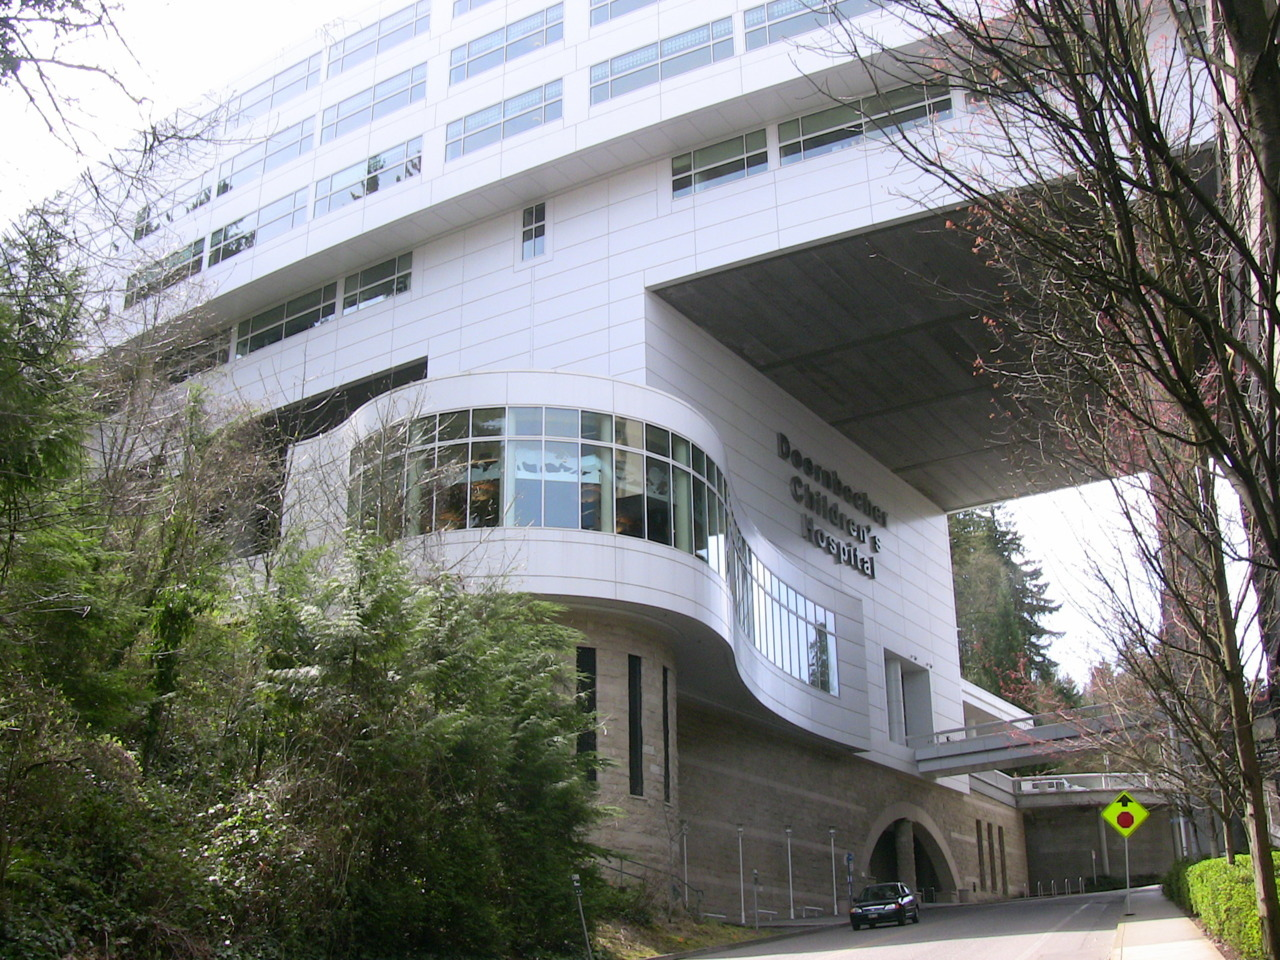 The Doernbecher Children's Hospital, built over a canyon on the OHSU campus.